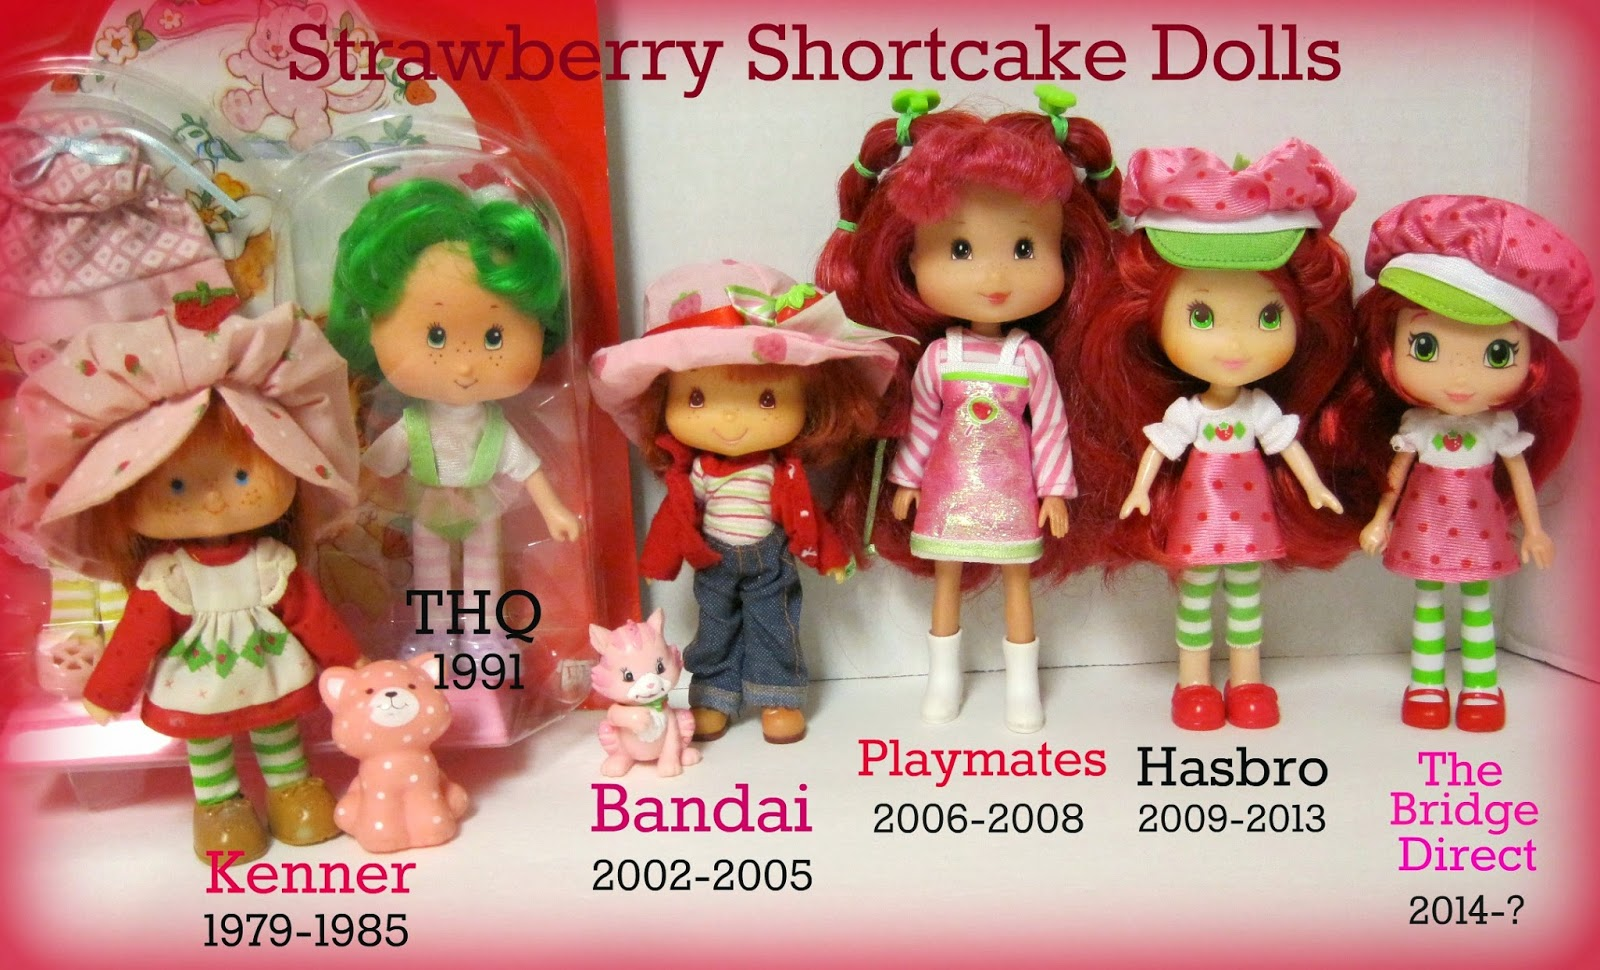 Vintage Girl Toys Strawberry Shortcake Doll Cute Collectible Doll